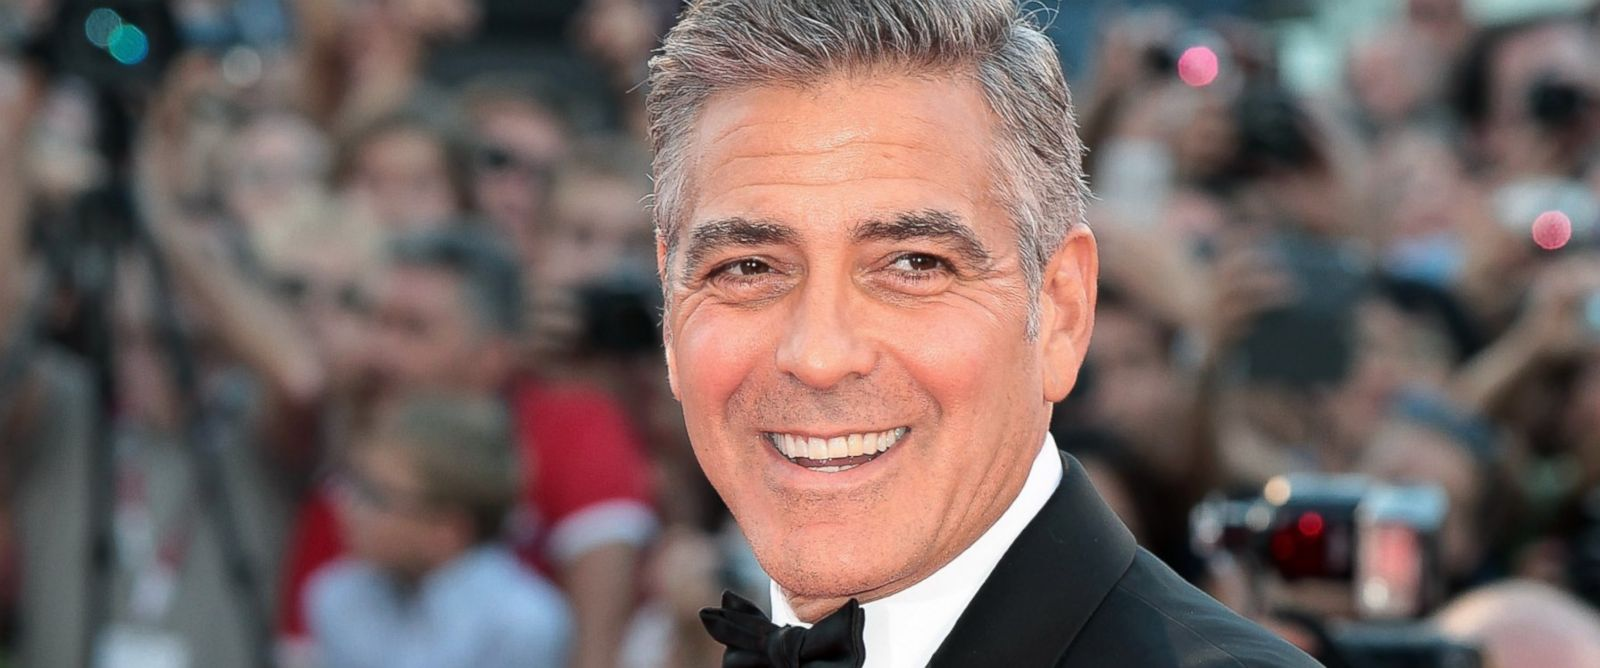 PHOTO: Actor George Clooney attends Gravity Premiere and Opening Ceremony during the 70th Venice International Film Festival at the Palazzo del Cinema in this Aug. 28, 2013, file photo.